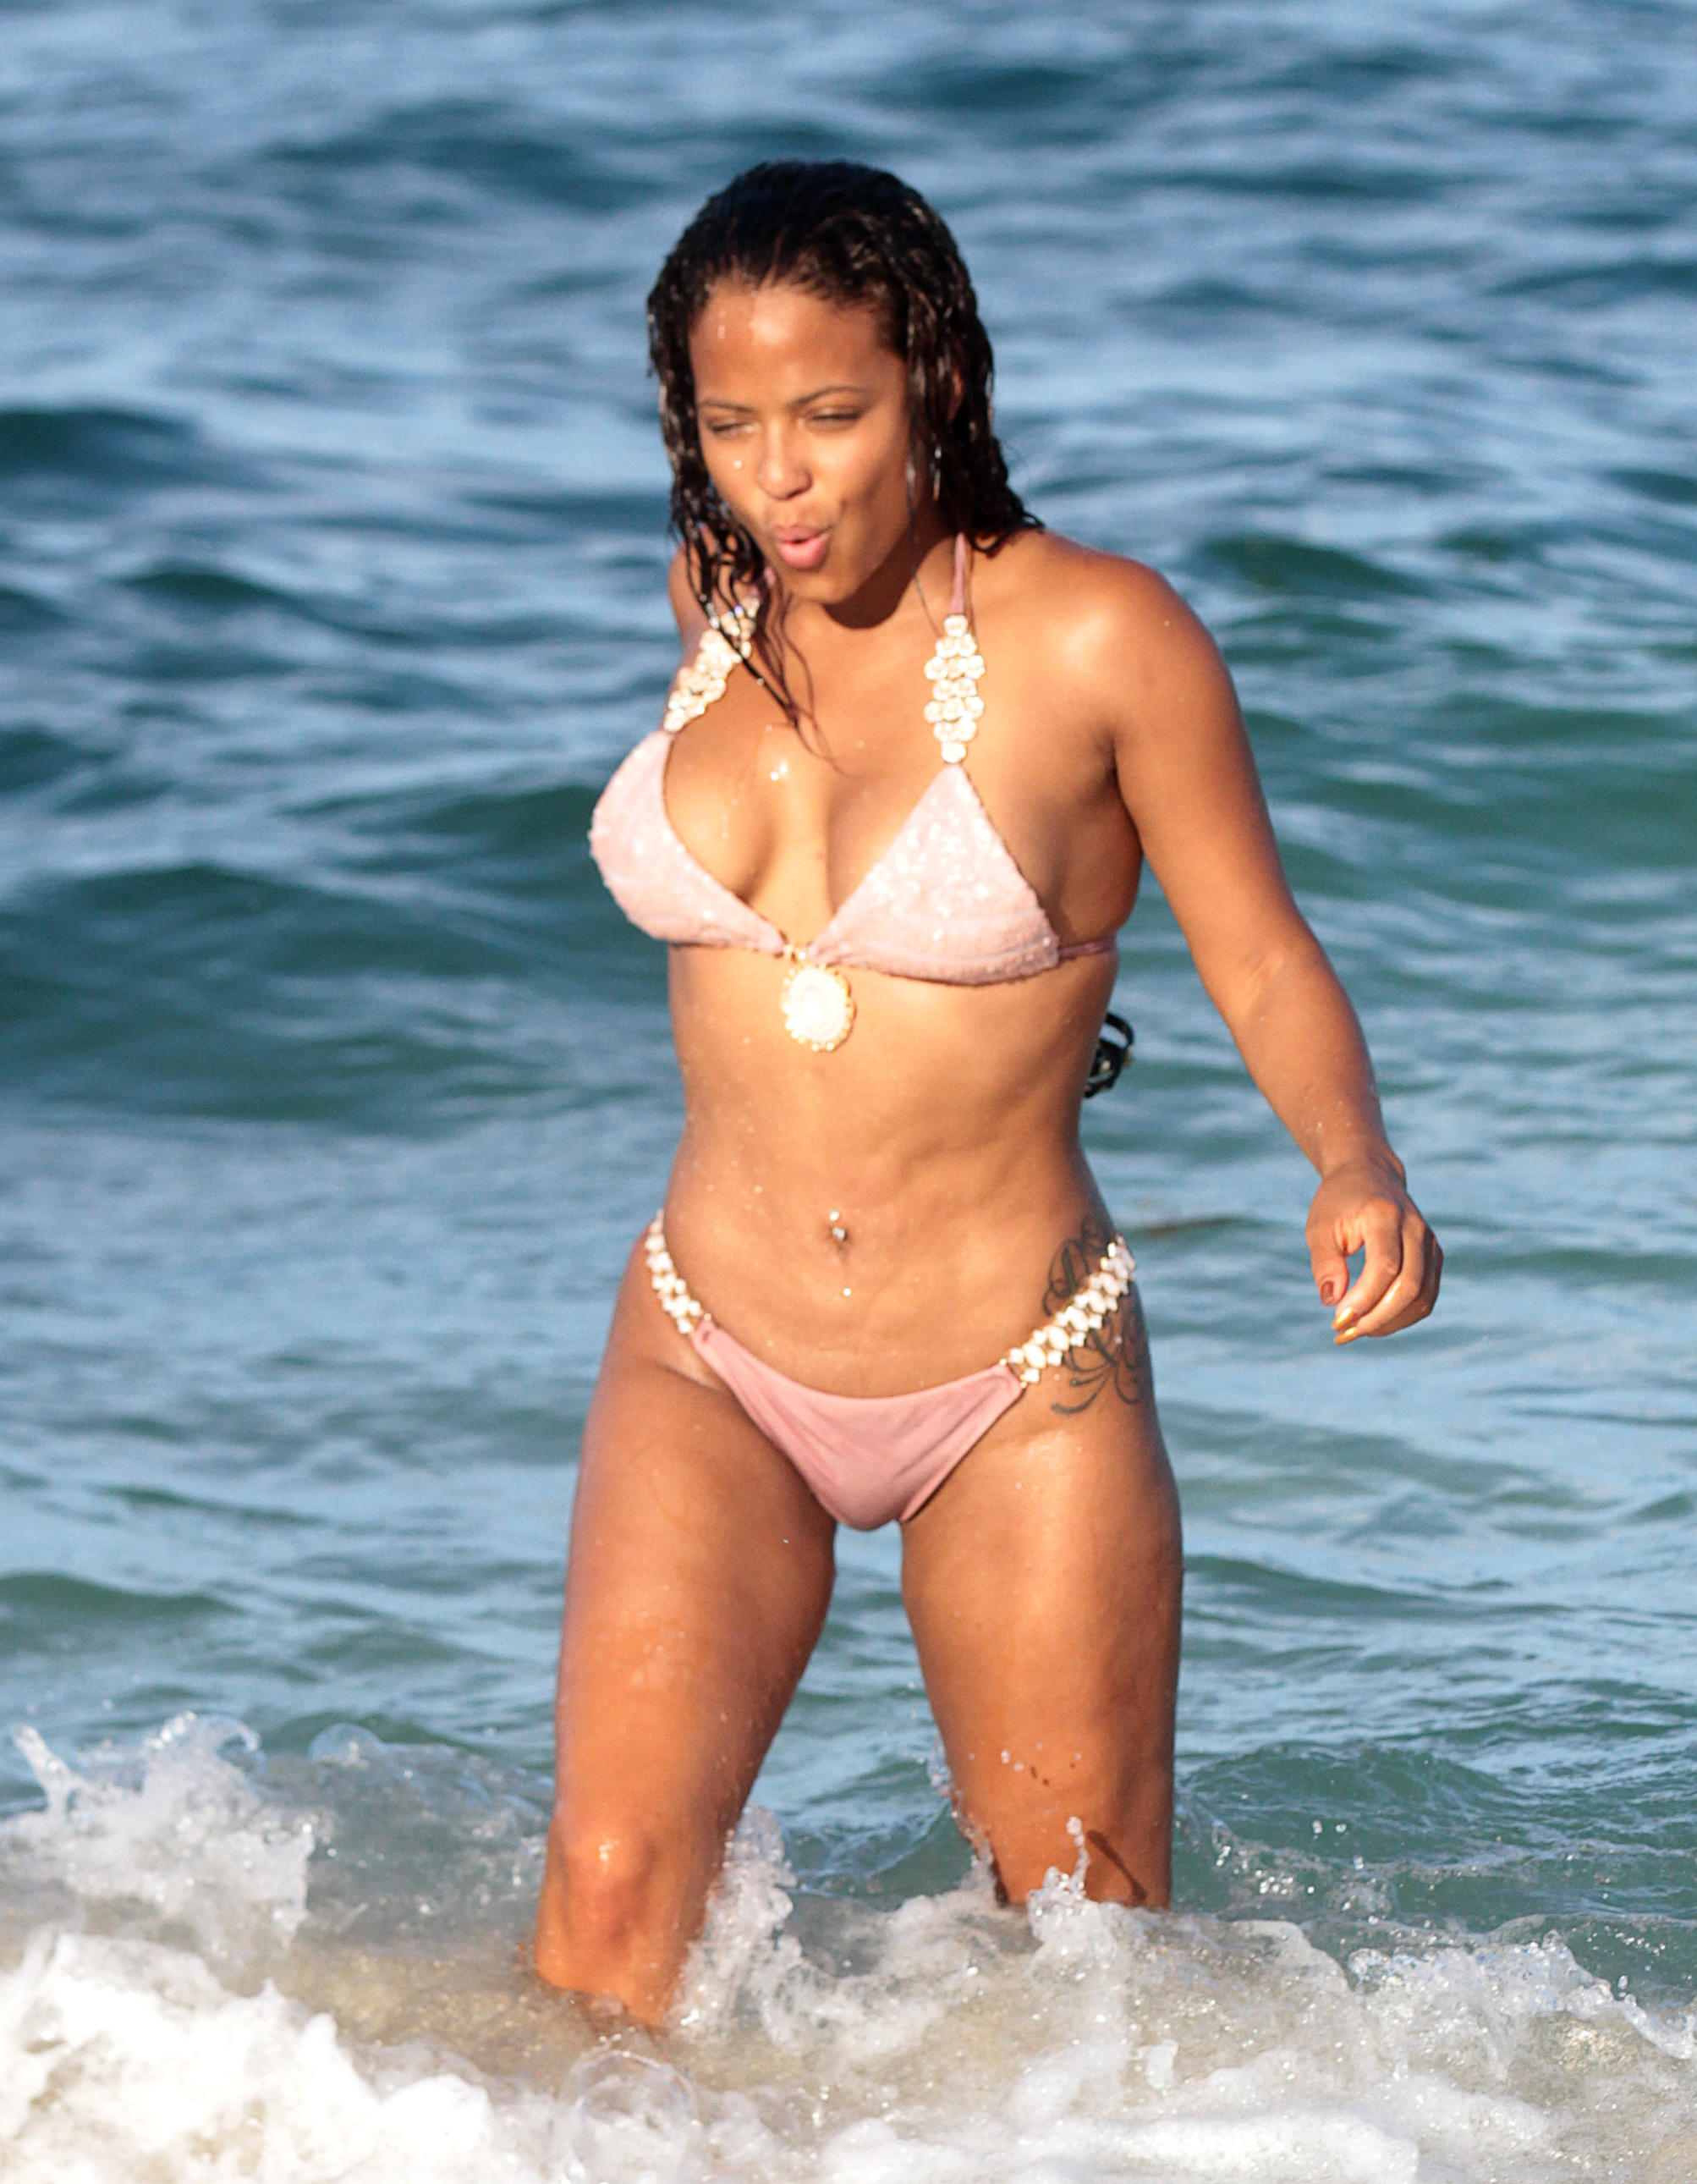 40 Hot Pictures Of Christina Milian Will Brighten Up Your Day-4906